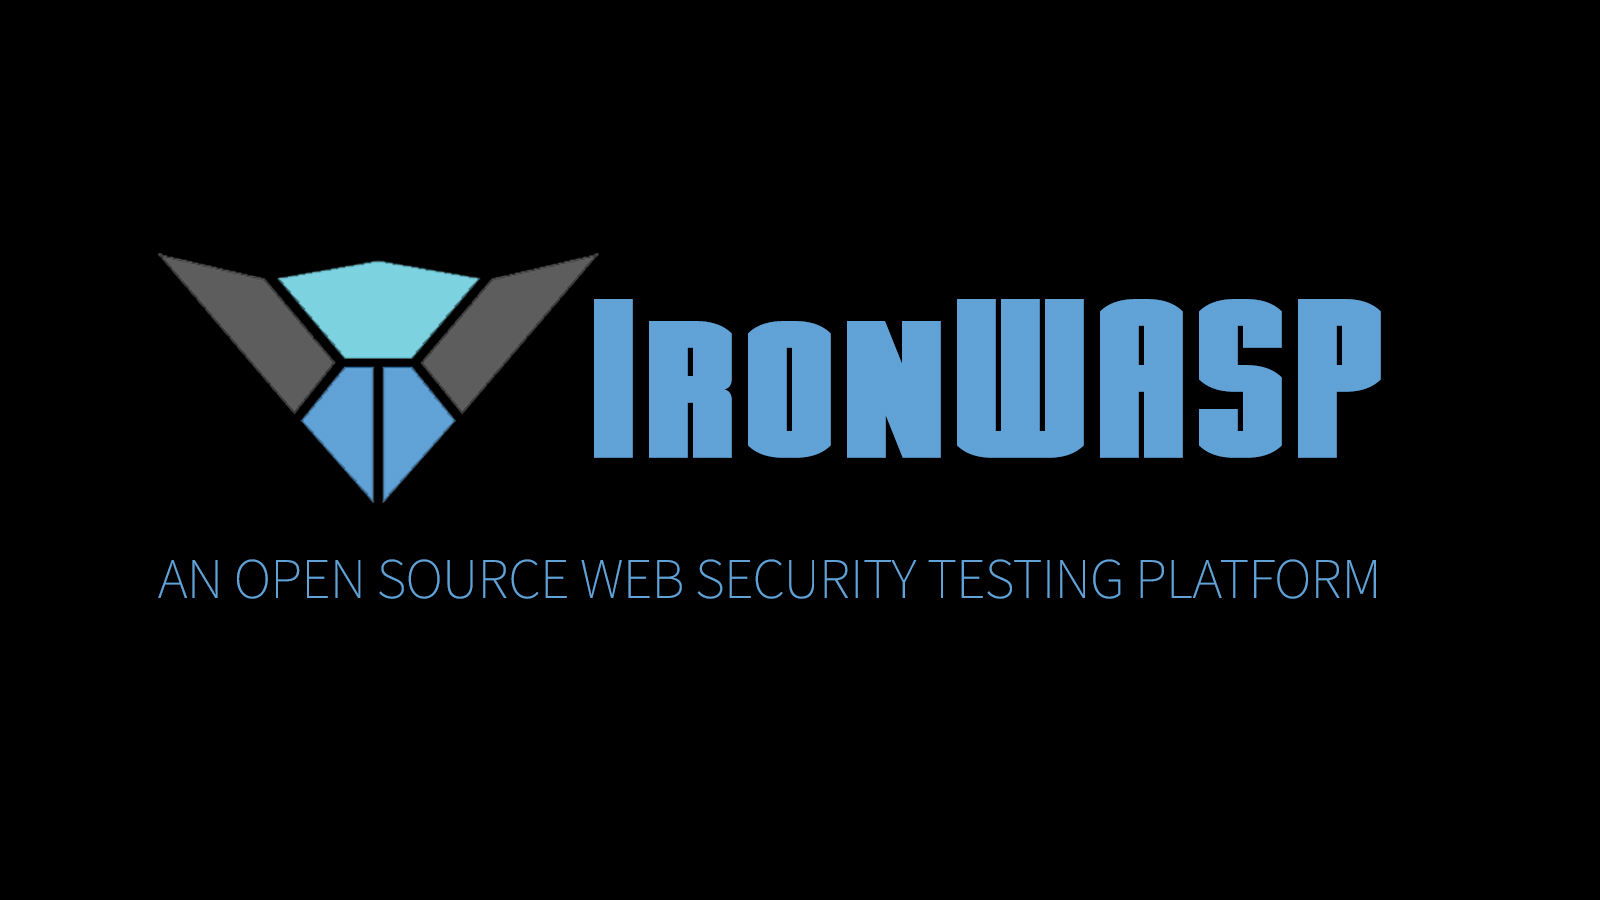 IronWASP - An Open Source Web Security Testing Platform